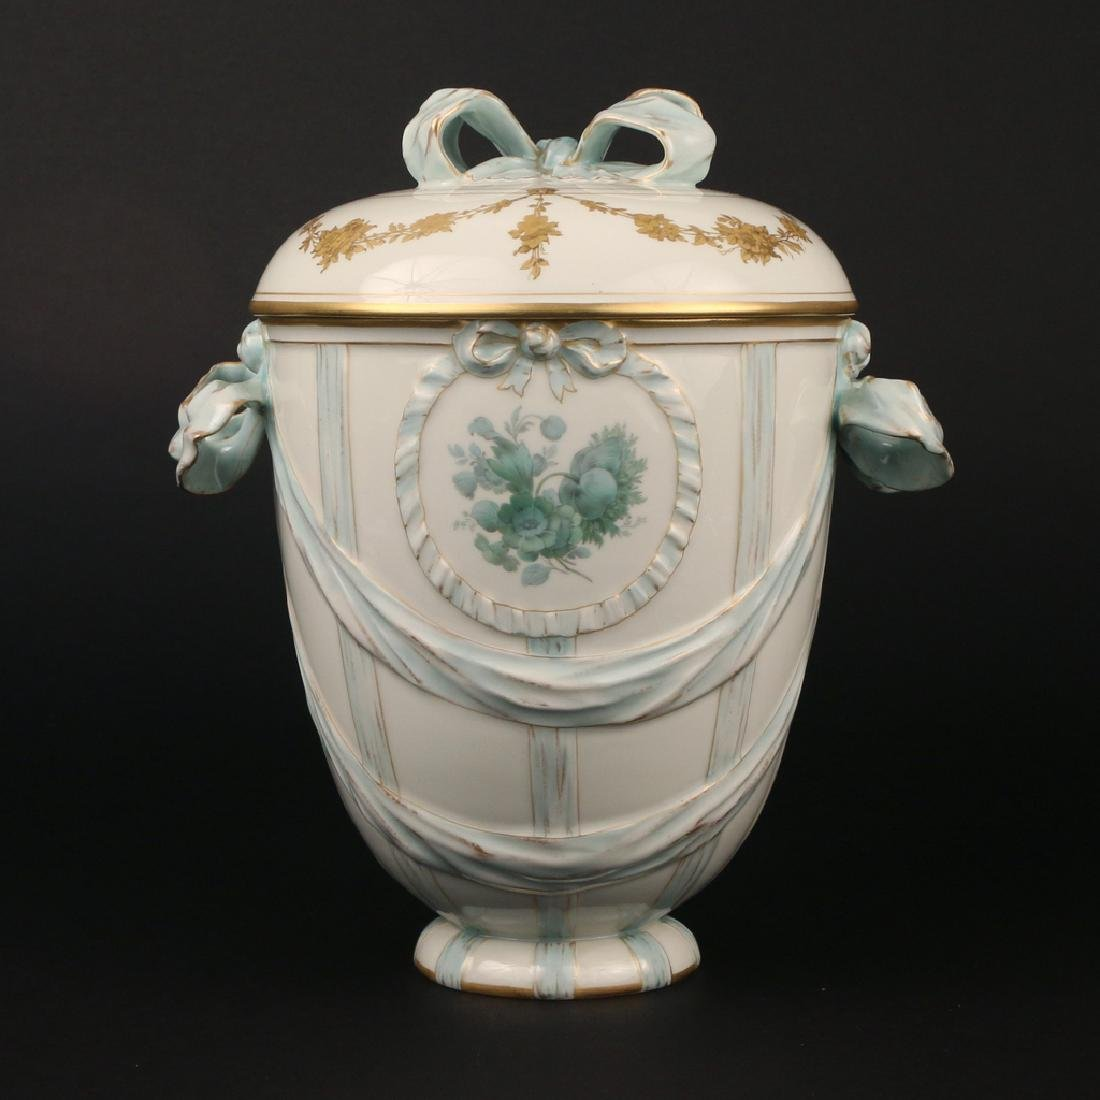 KPM PORCELAIN COVERED JAR - 2